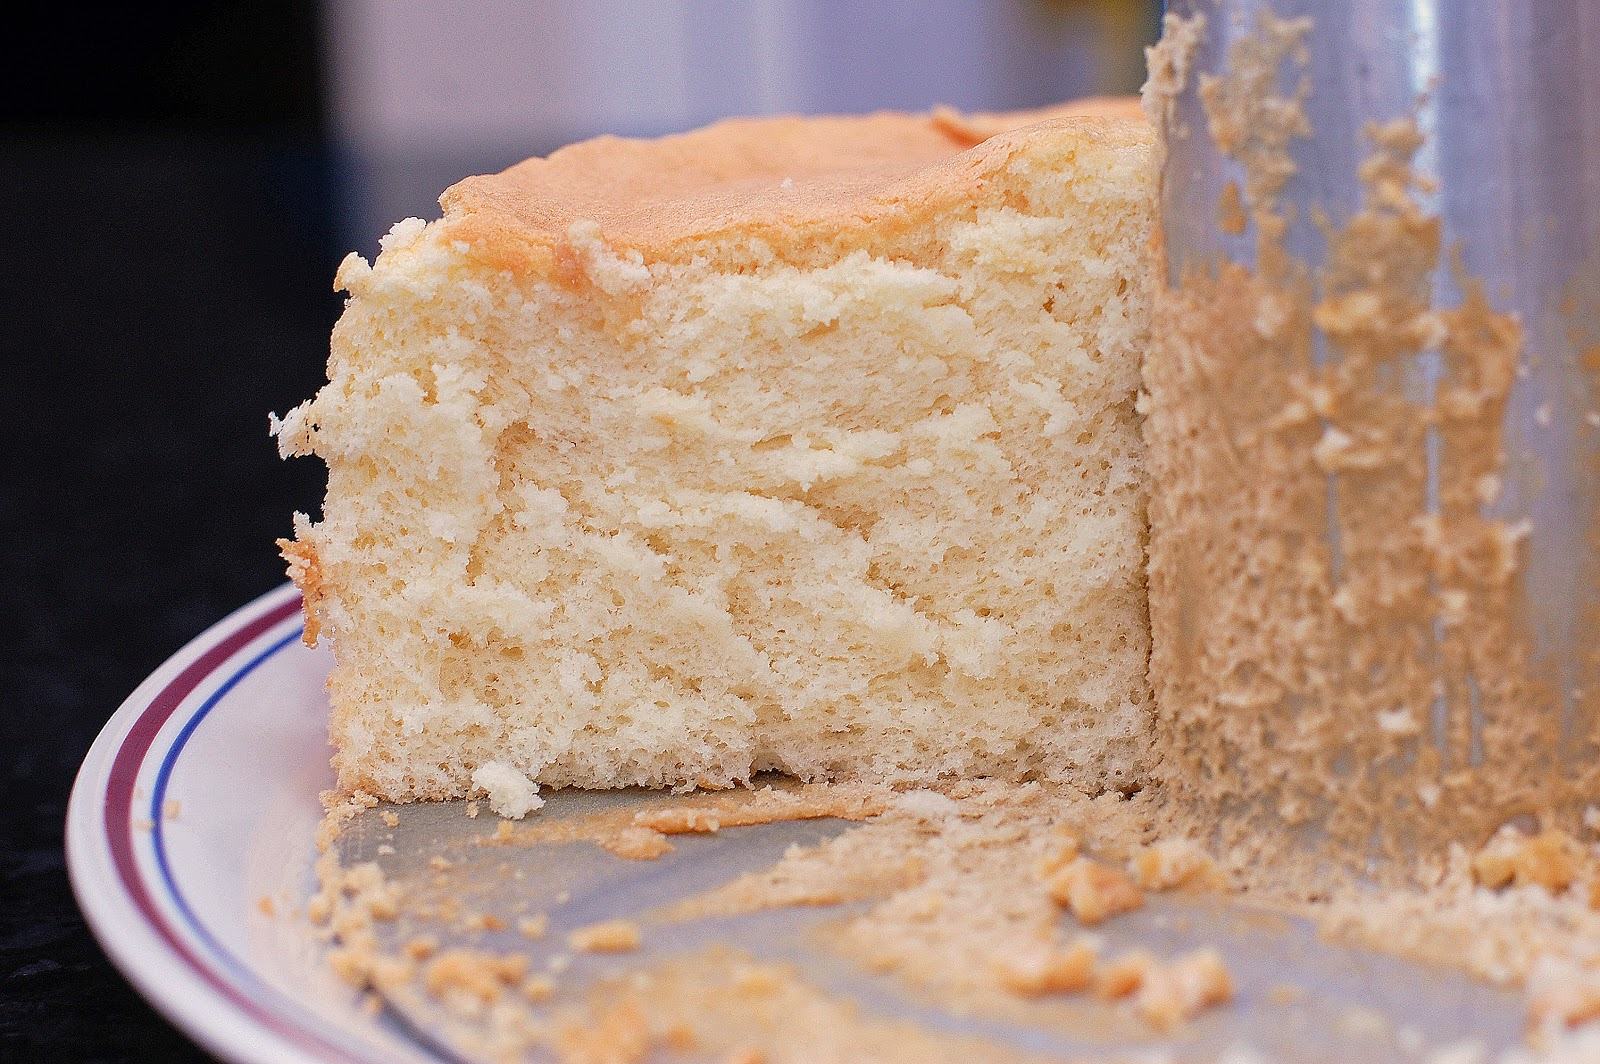 decided to make a gluten-free vanilla chiffon sponge cake. It was a ...